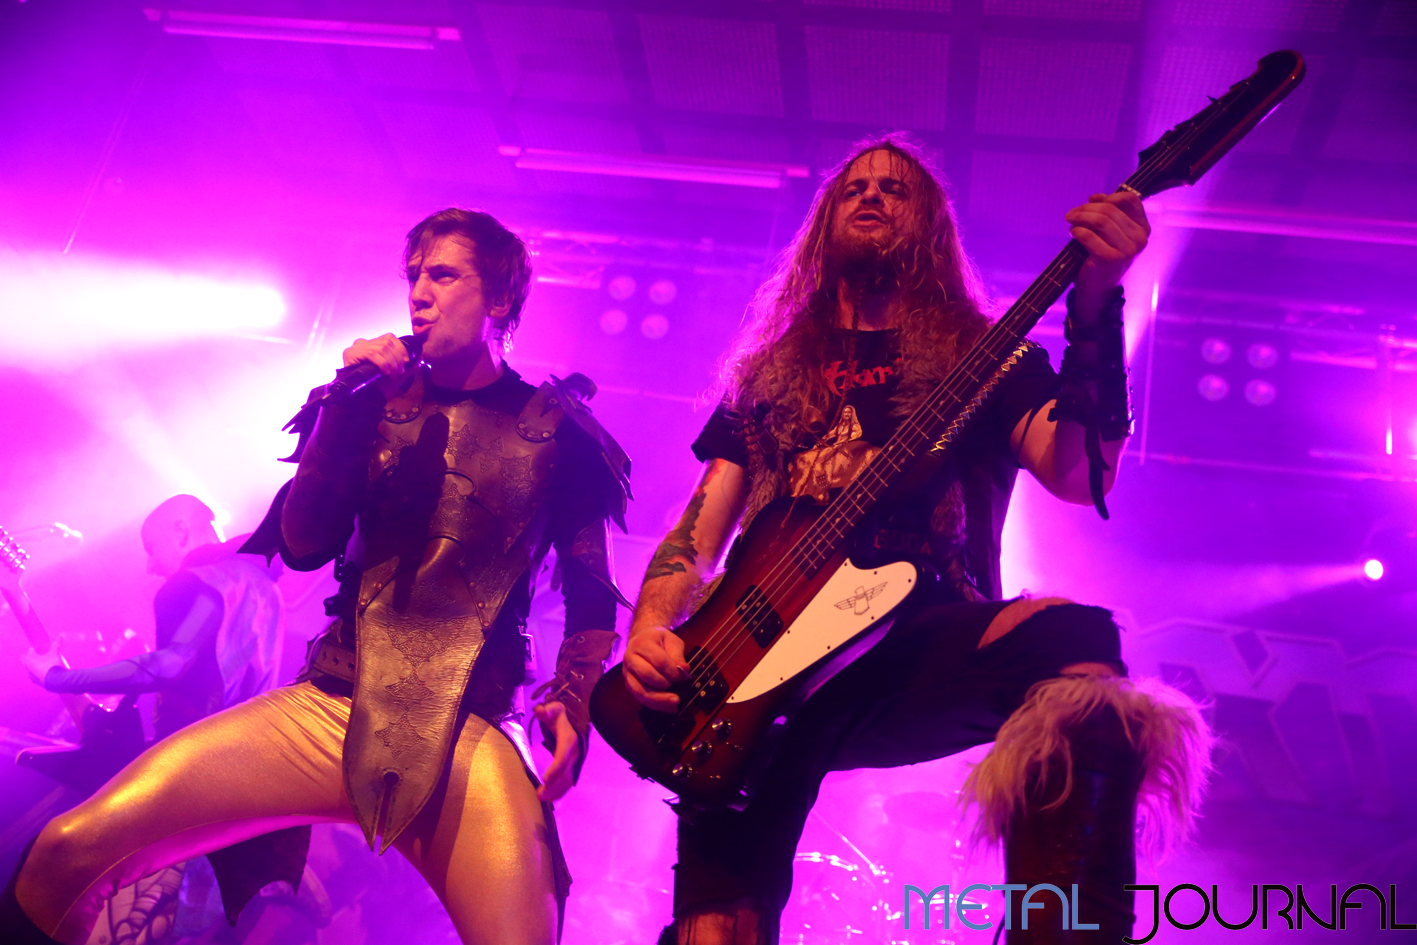 gloryhammer - metal journal 2018 pic 8